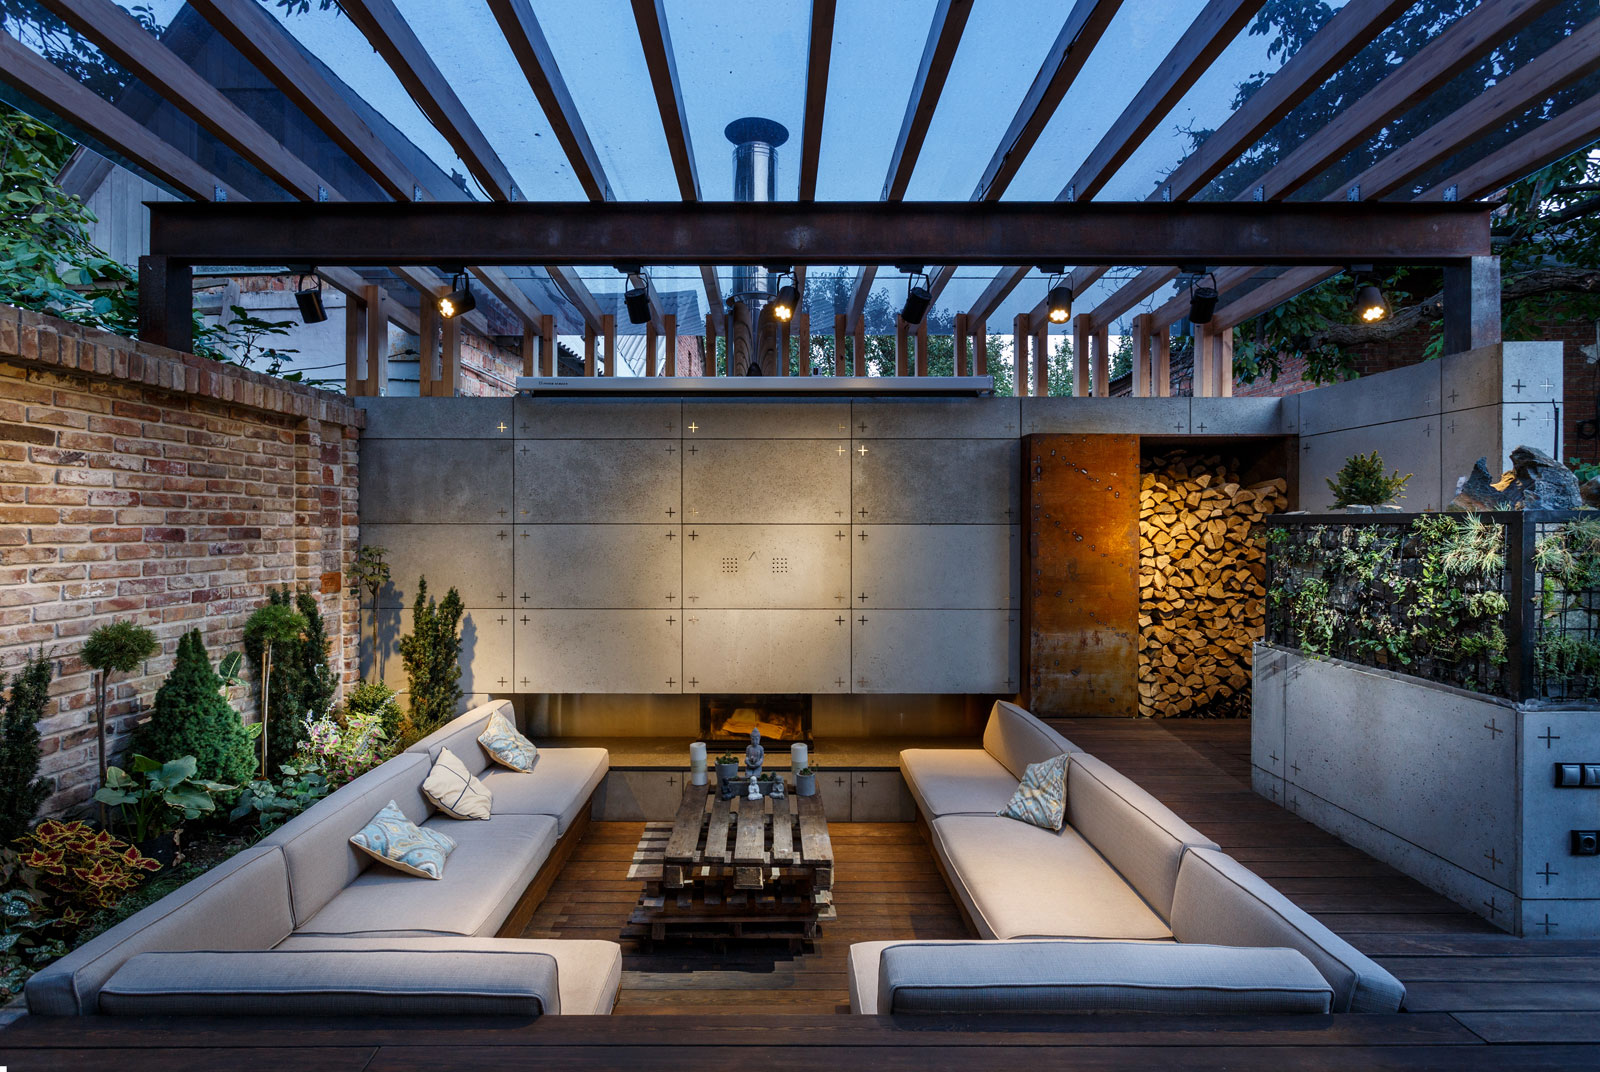 Contemporary Compact Courtyard of Lounge Zone by SVOYA studio-21